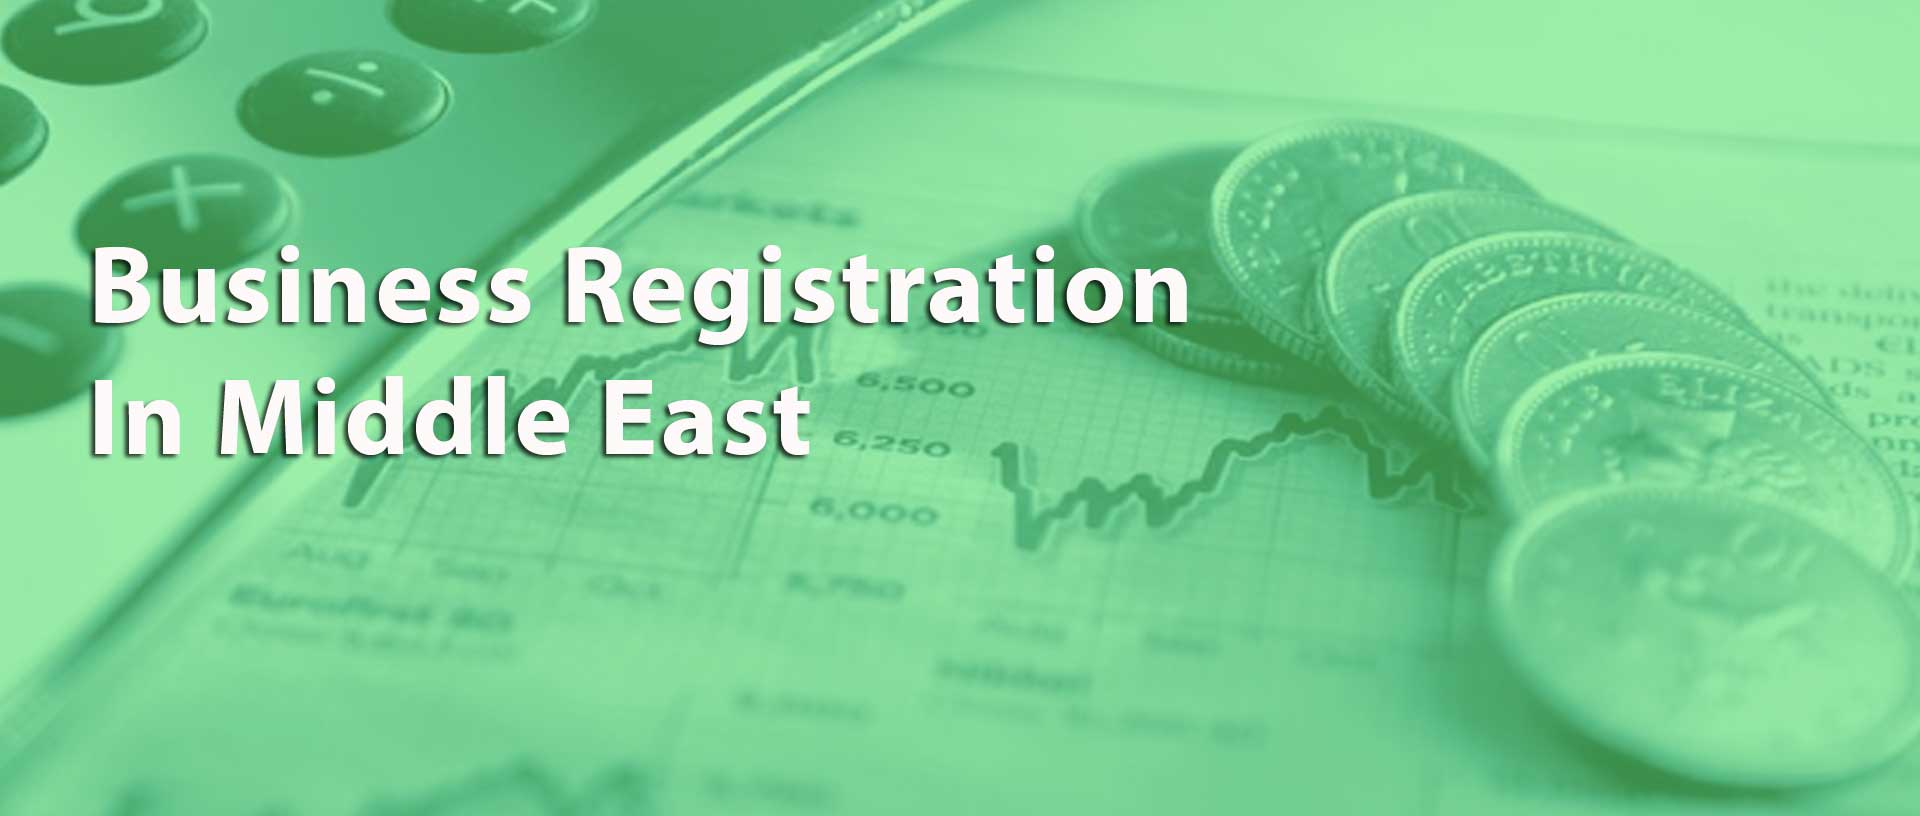 Business Registration In Middle East